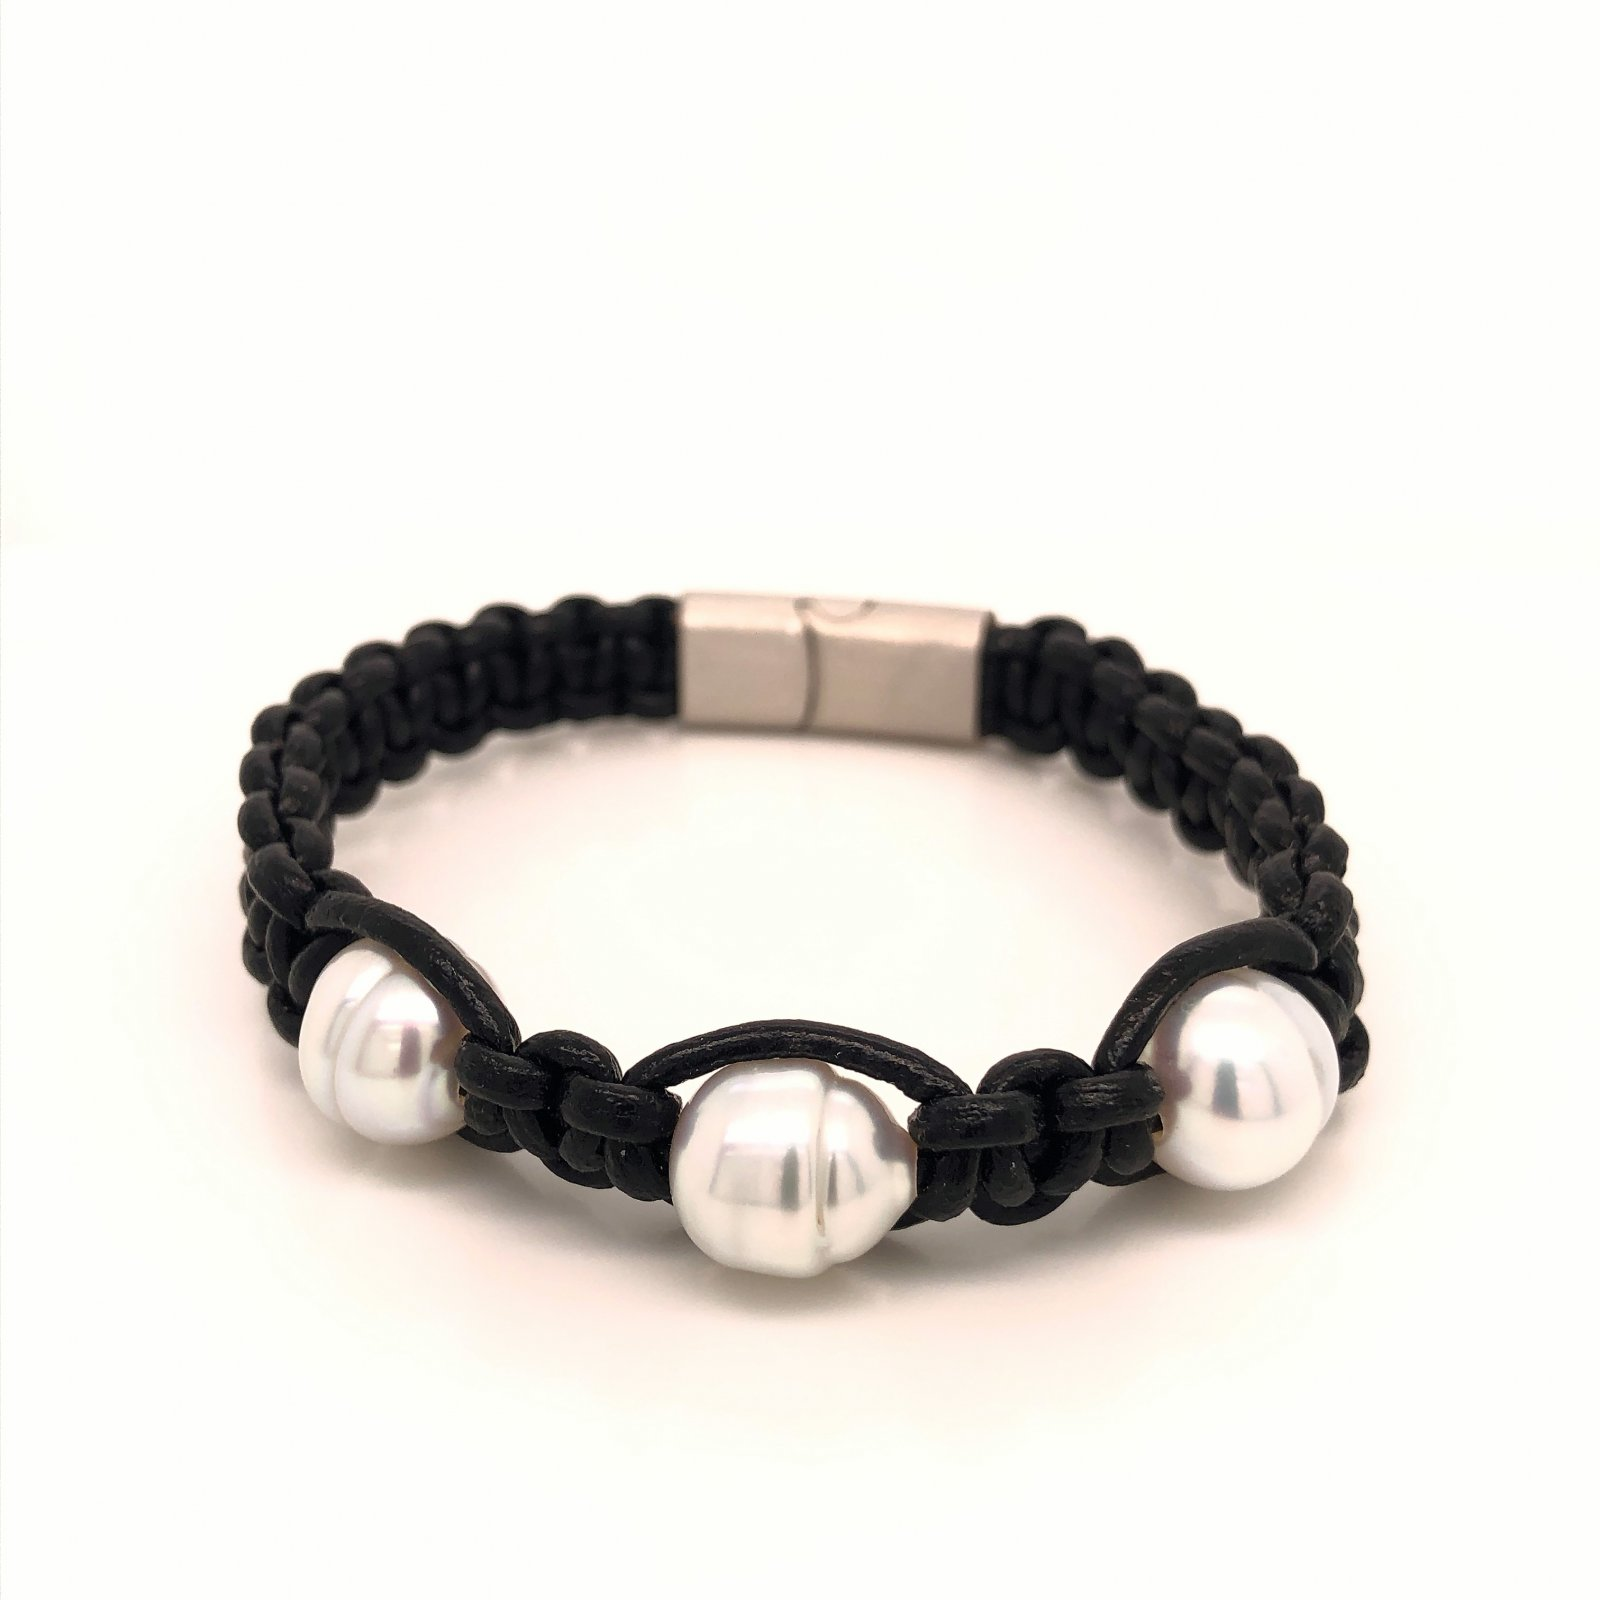 7.5 10-11mm  White South Sea Pearl and Leather Bracelet